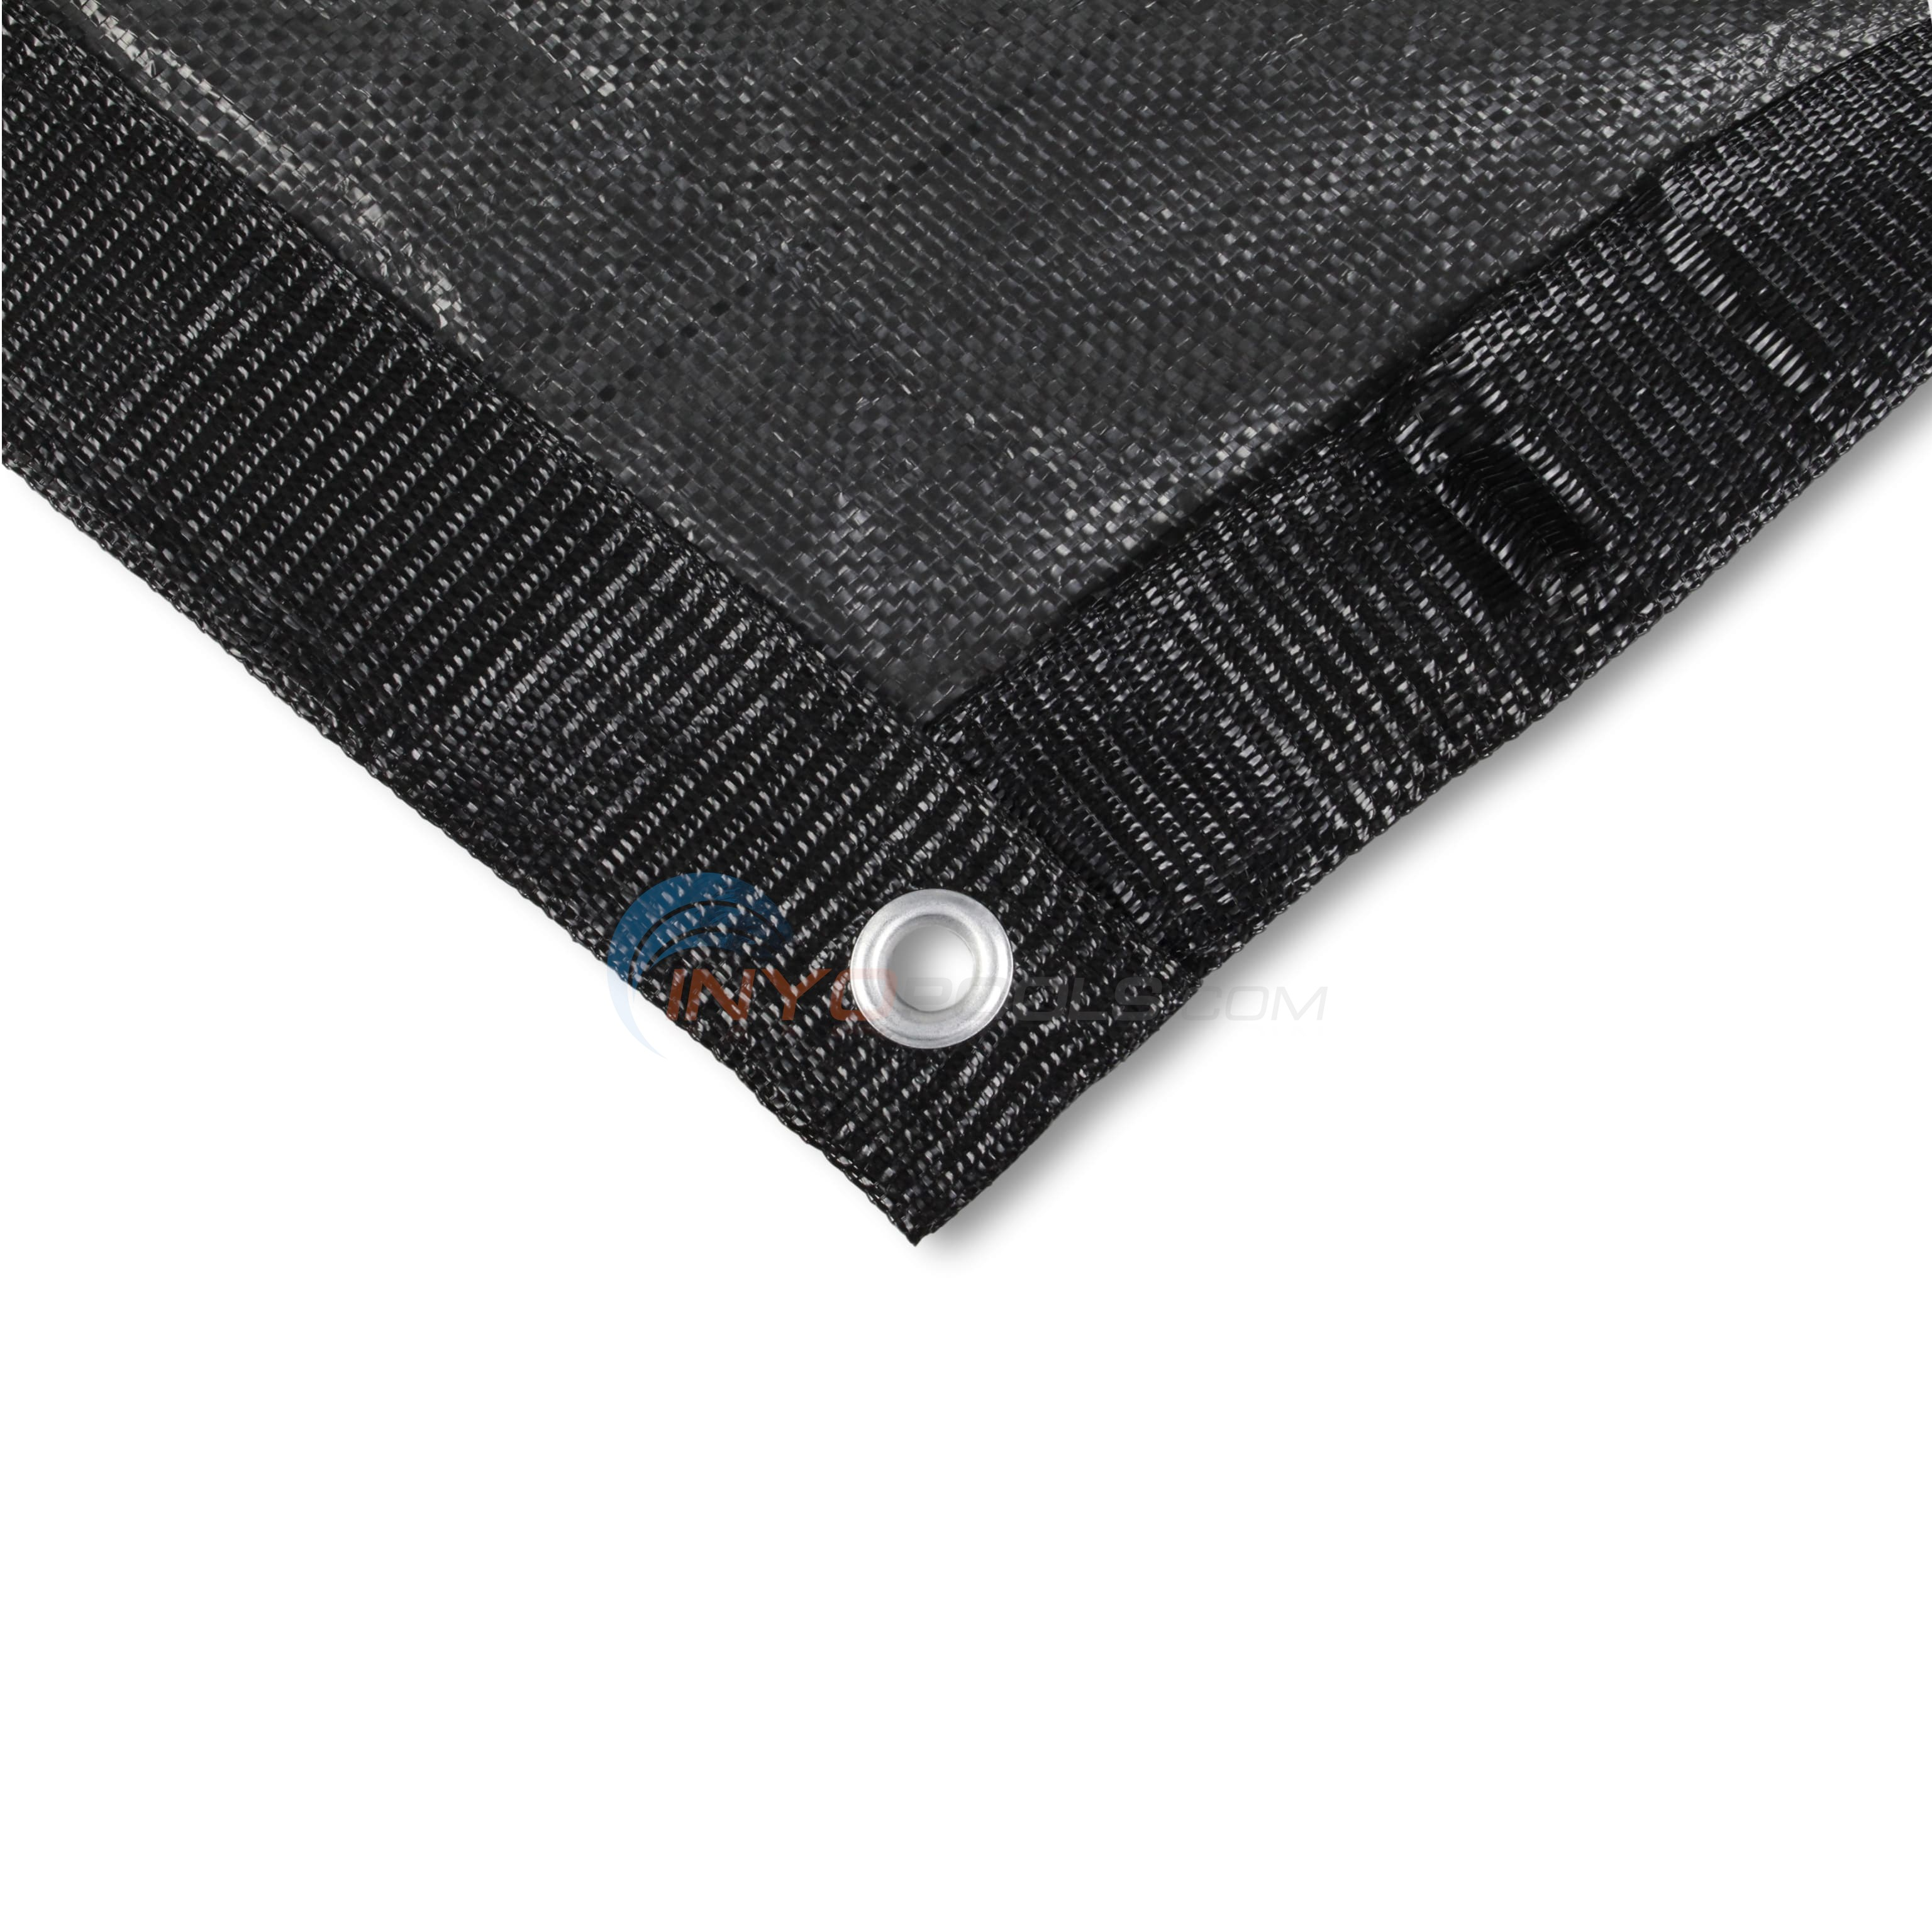 PureLine 8 Yr. Mesh Inground Pool Cover 20' x 40' Rect. - PL6952